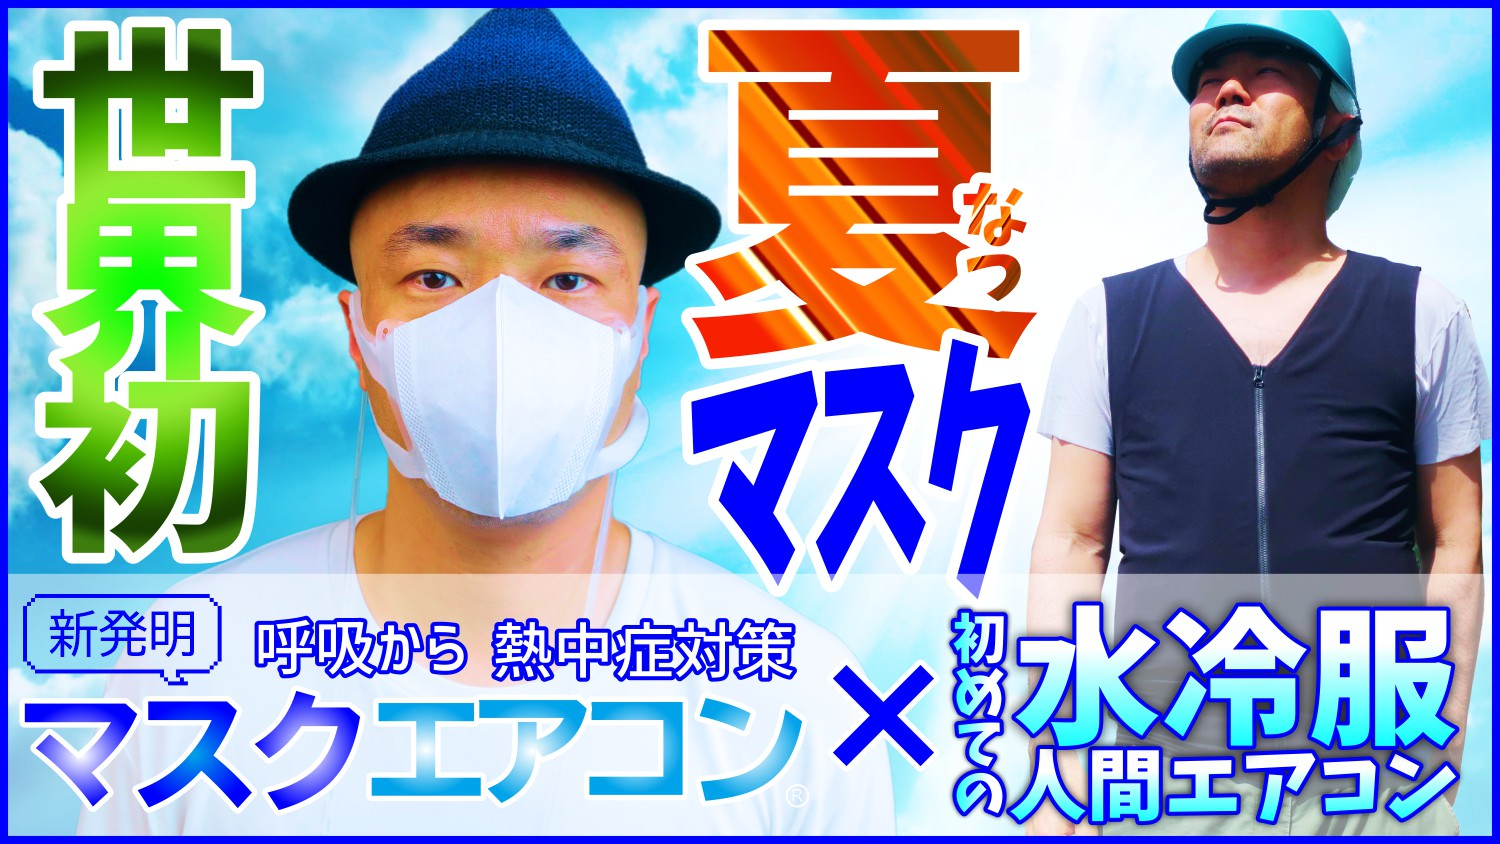 Air conditioning mask to cool the breath/呼吸を冷やすエアコンマスク